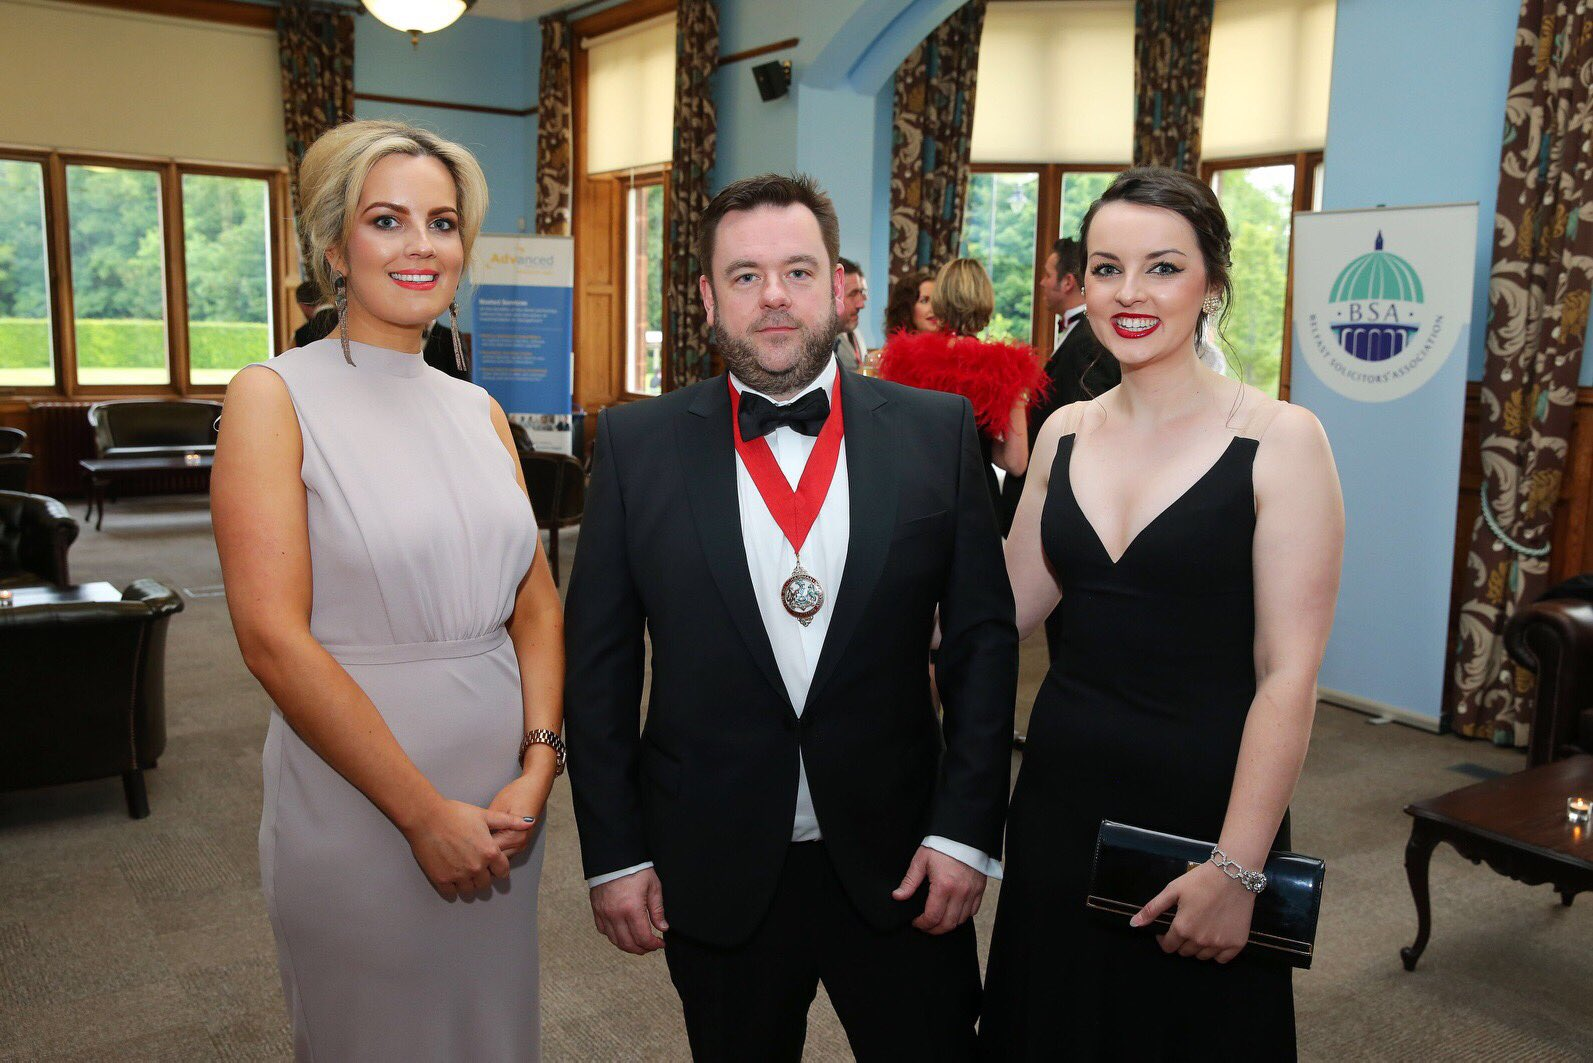 Guests at the gala dinner, including KRW Law's Claire McKeegan (left) and BSA chair Eoghan McKenna (centre)